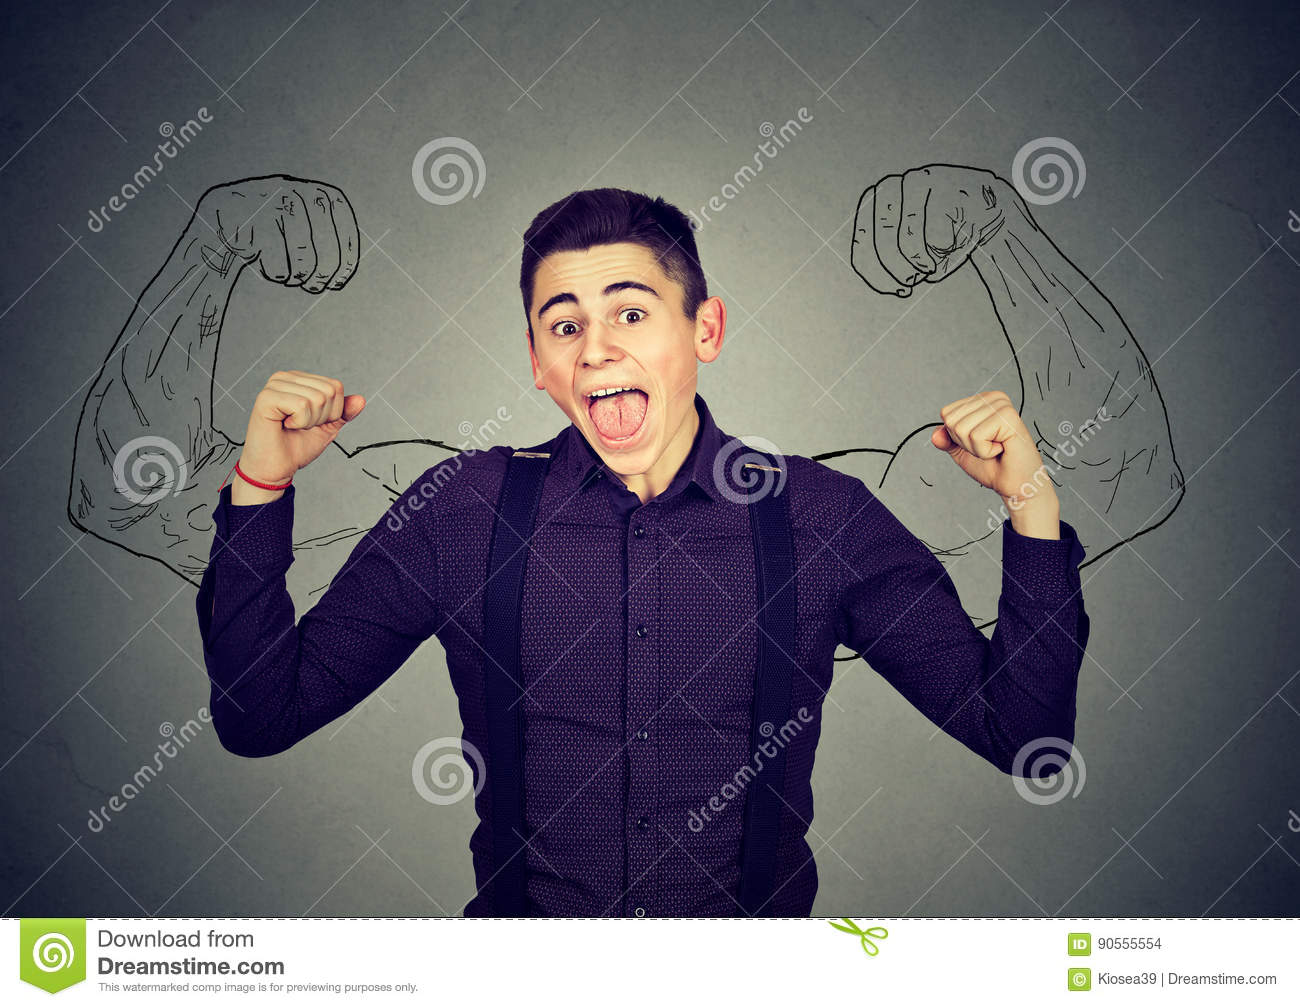 Powerful confident young man flexing his muscles